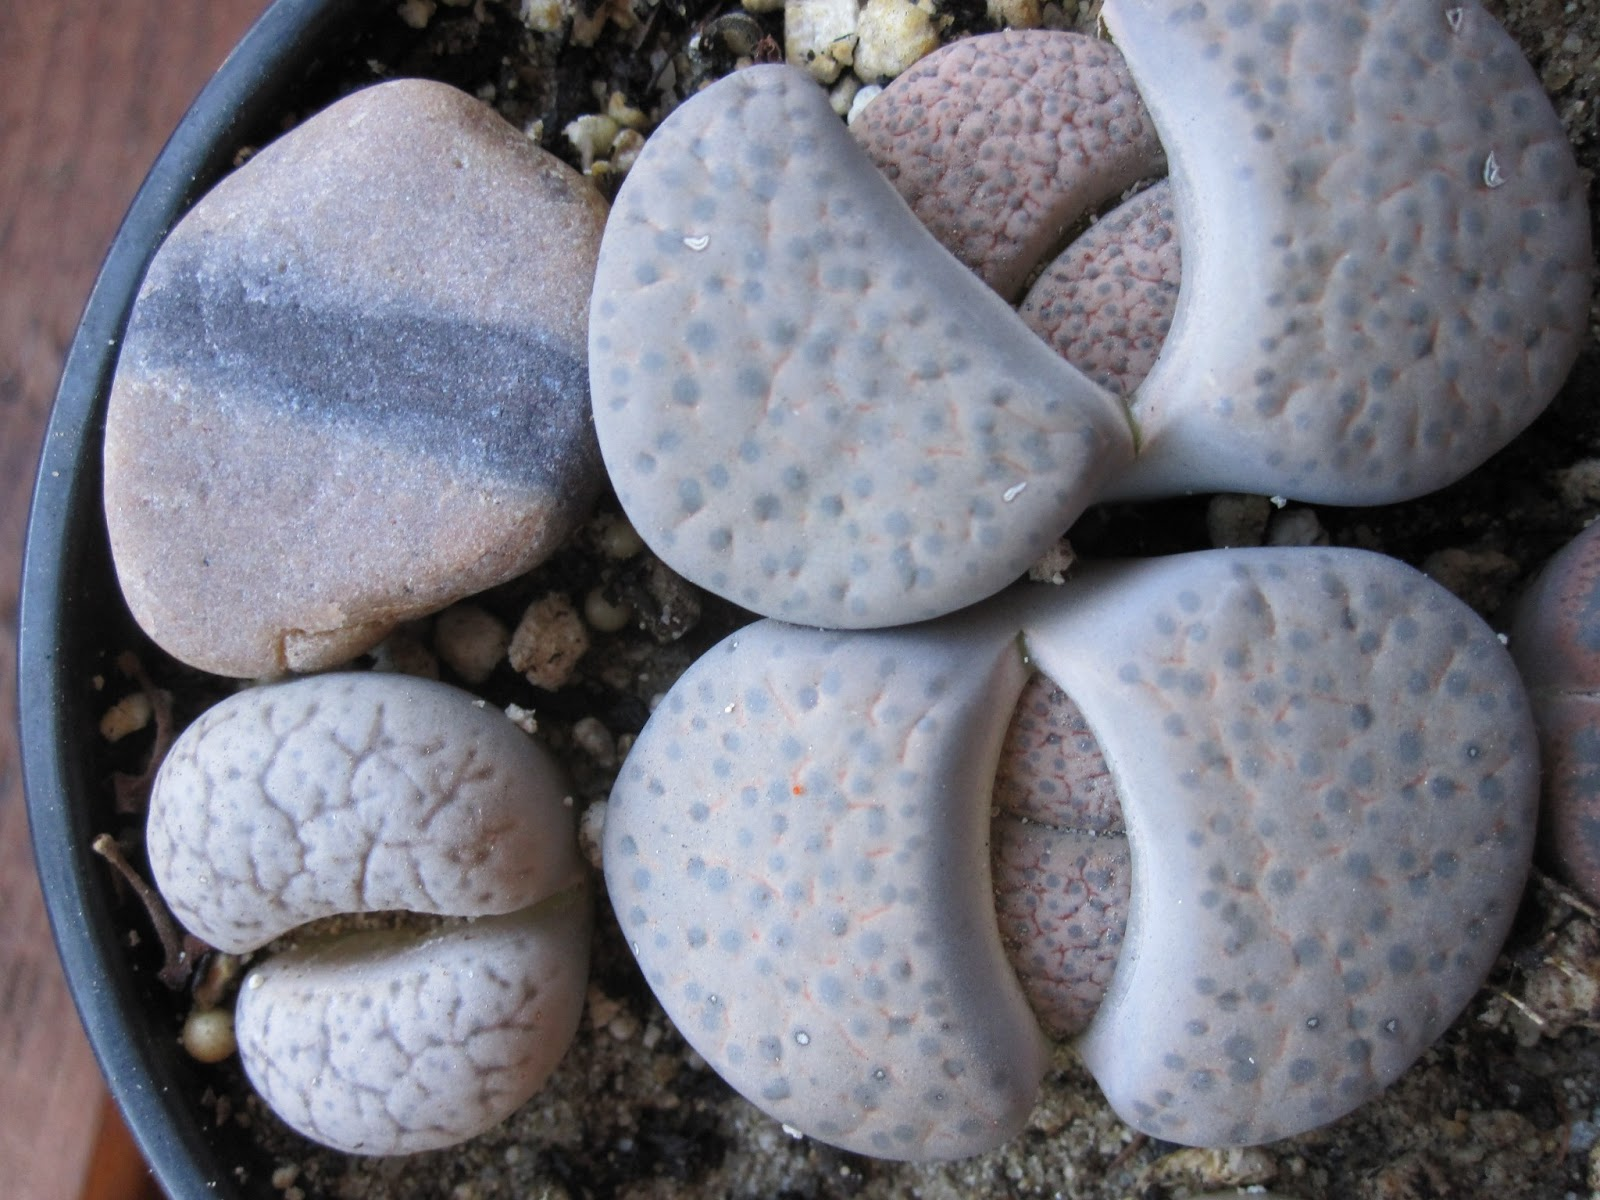 plants that look like rocks. lithops